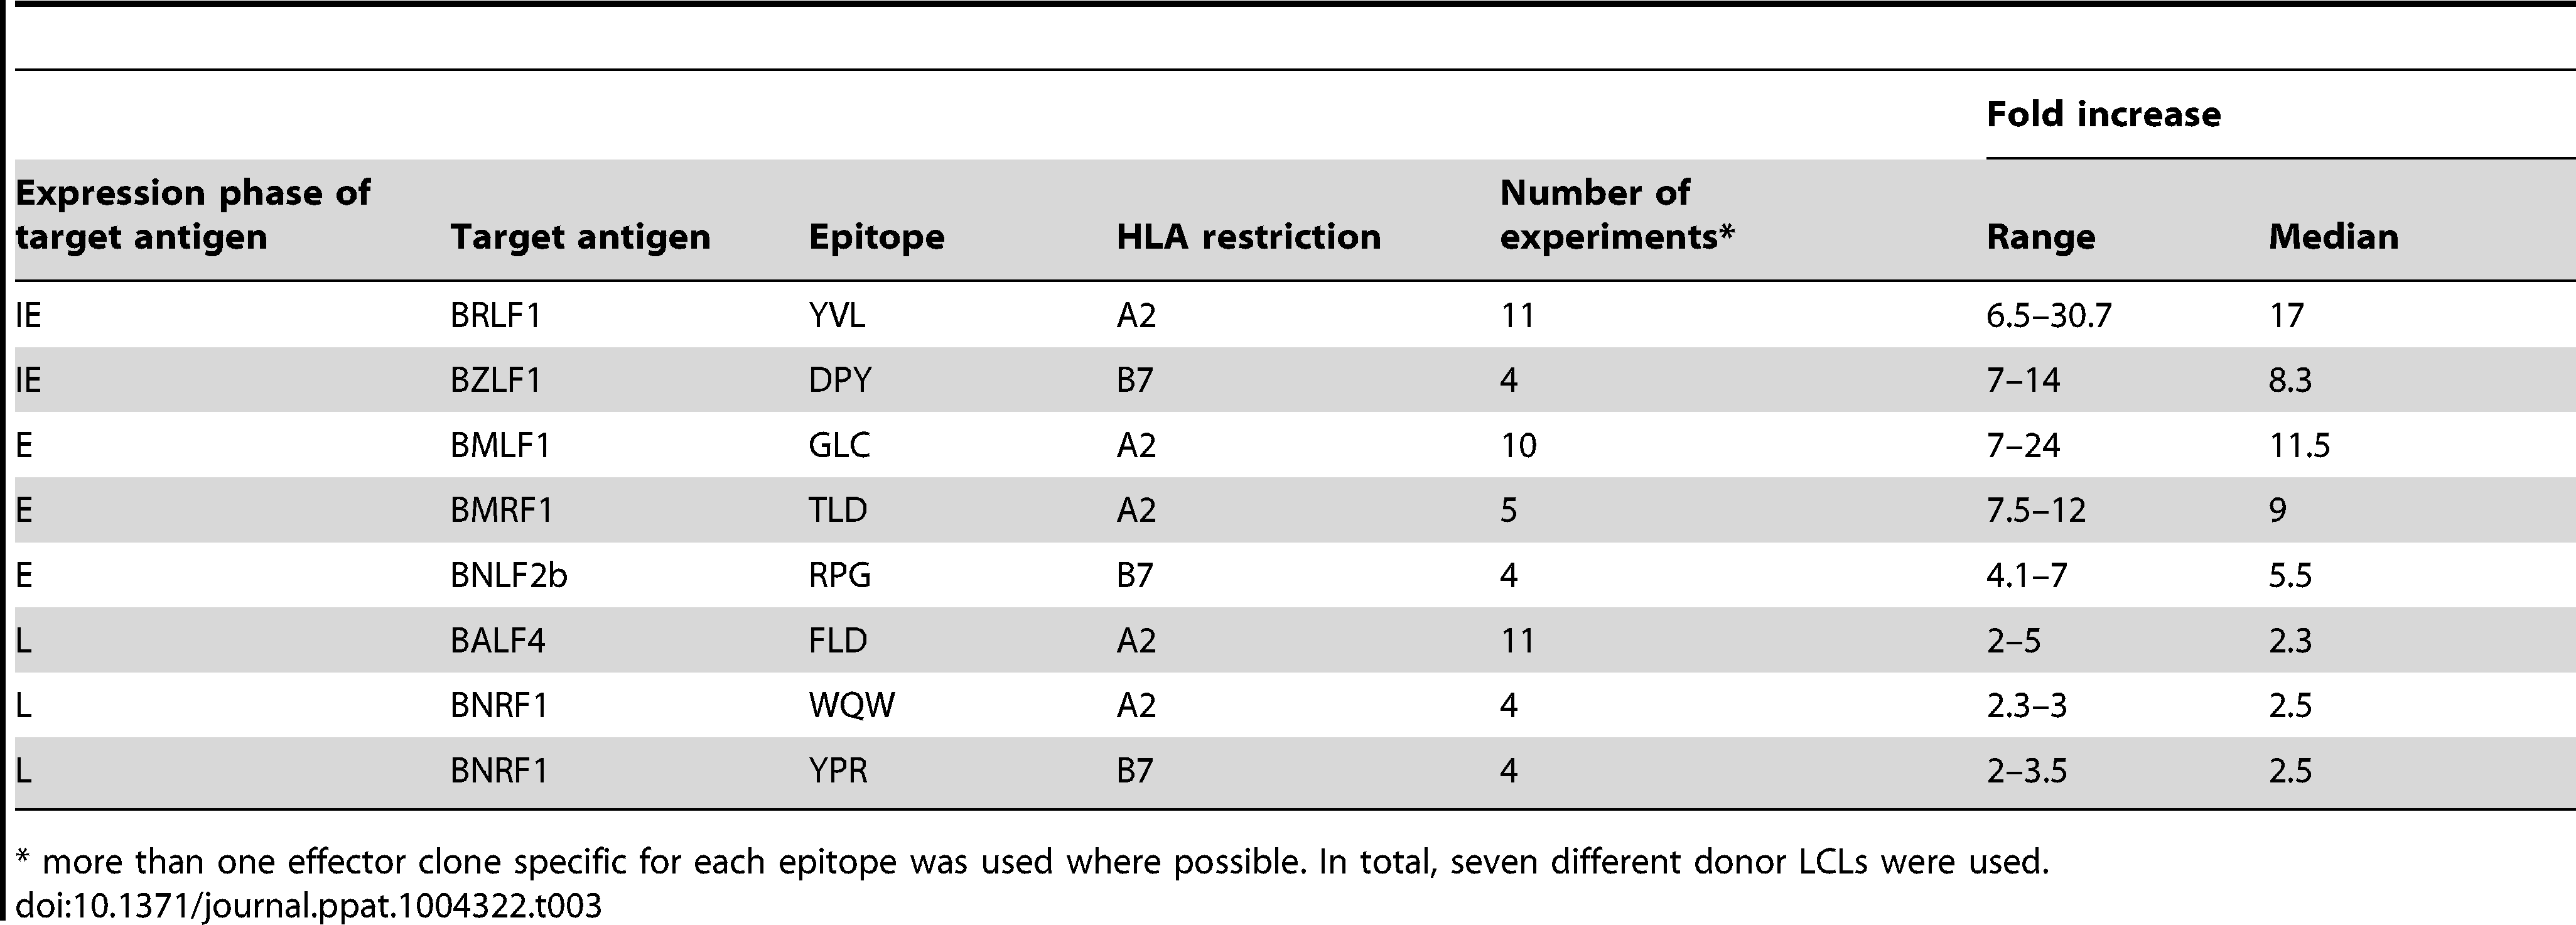 Summary of fold increase in CD8<sup>+</sup> T cell recognition of EBV-antigens presented by shBNLF2a-LCLs compared to shControl-LCLs.